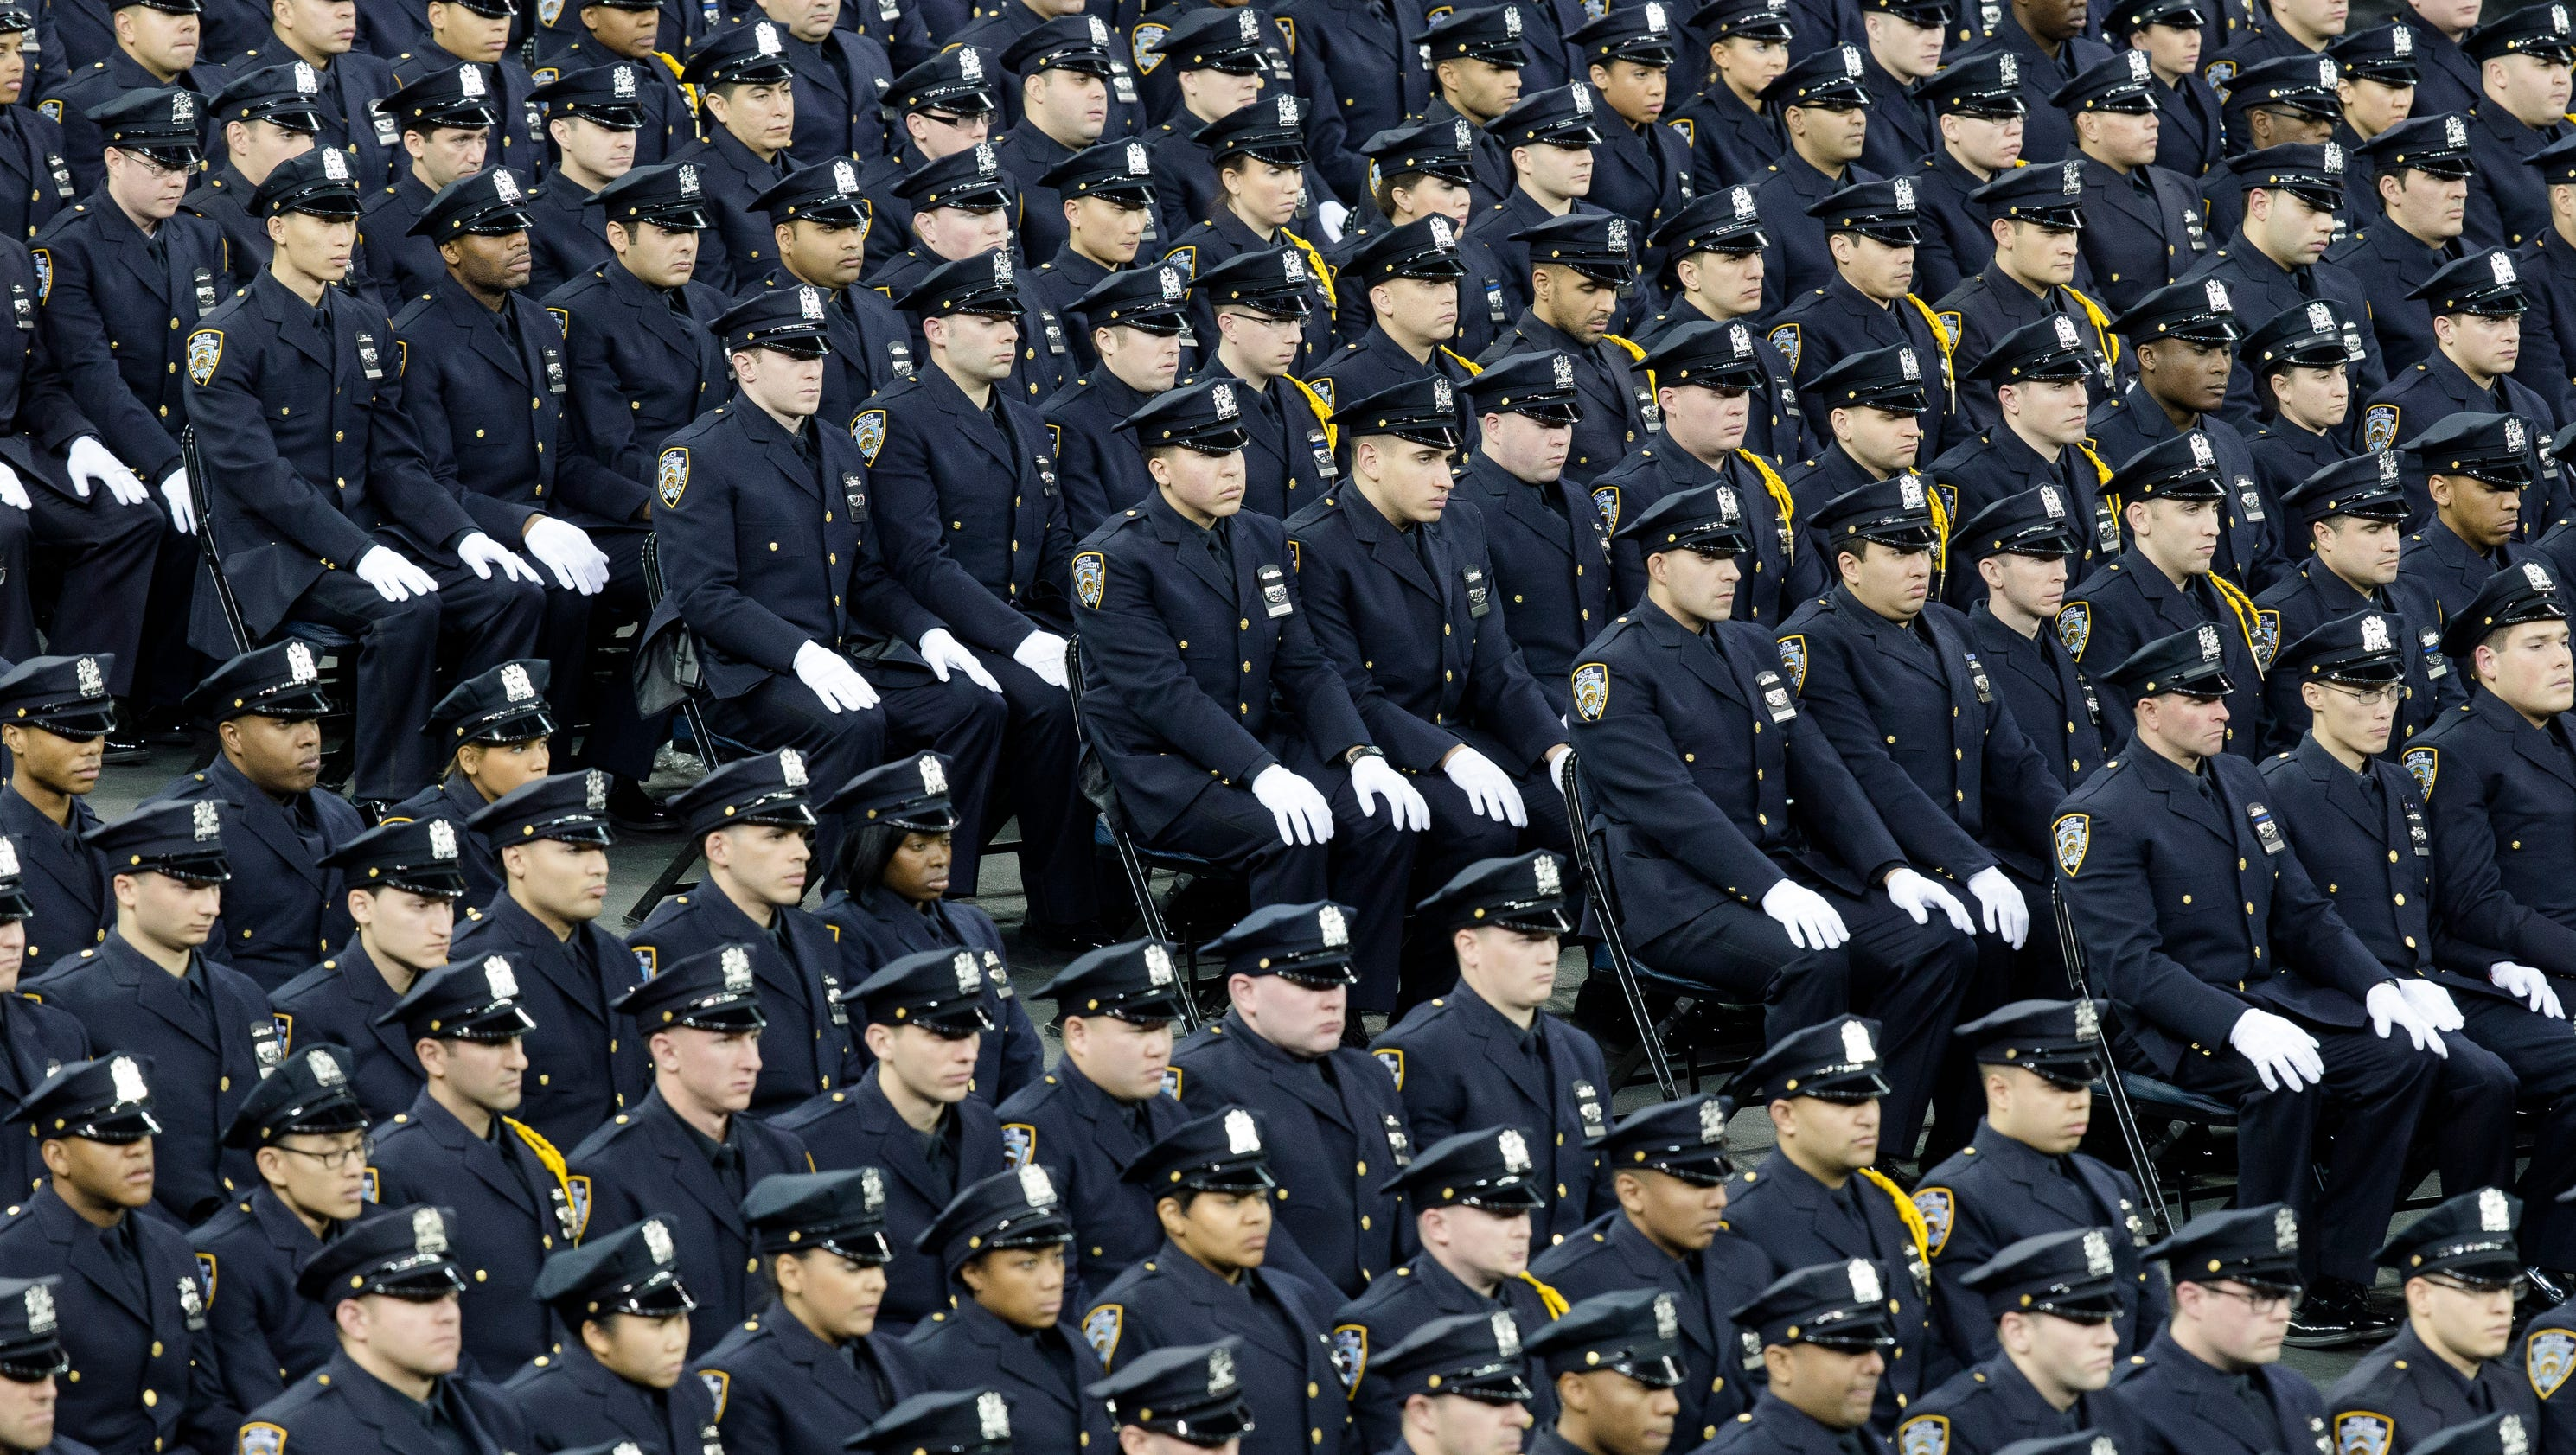 Police diversity lags in many cities